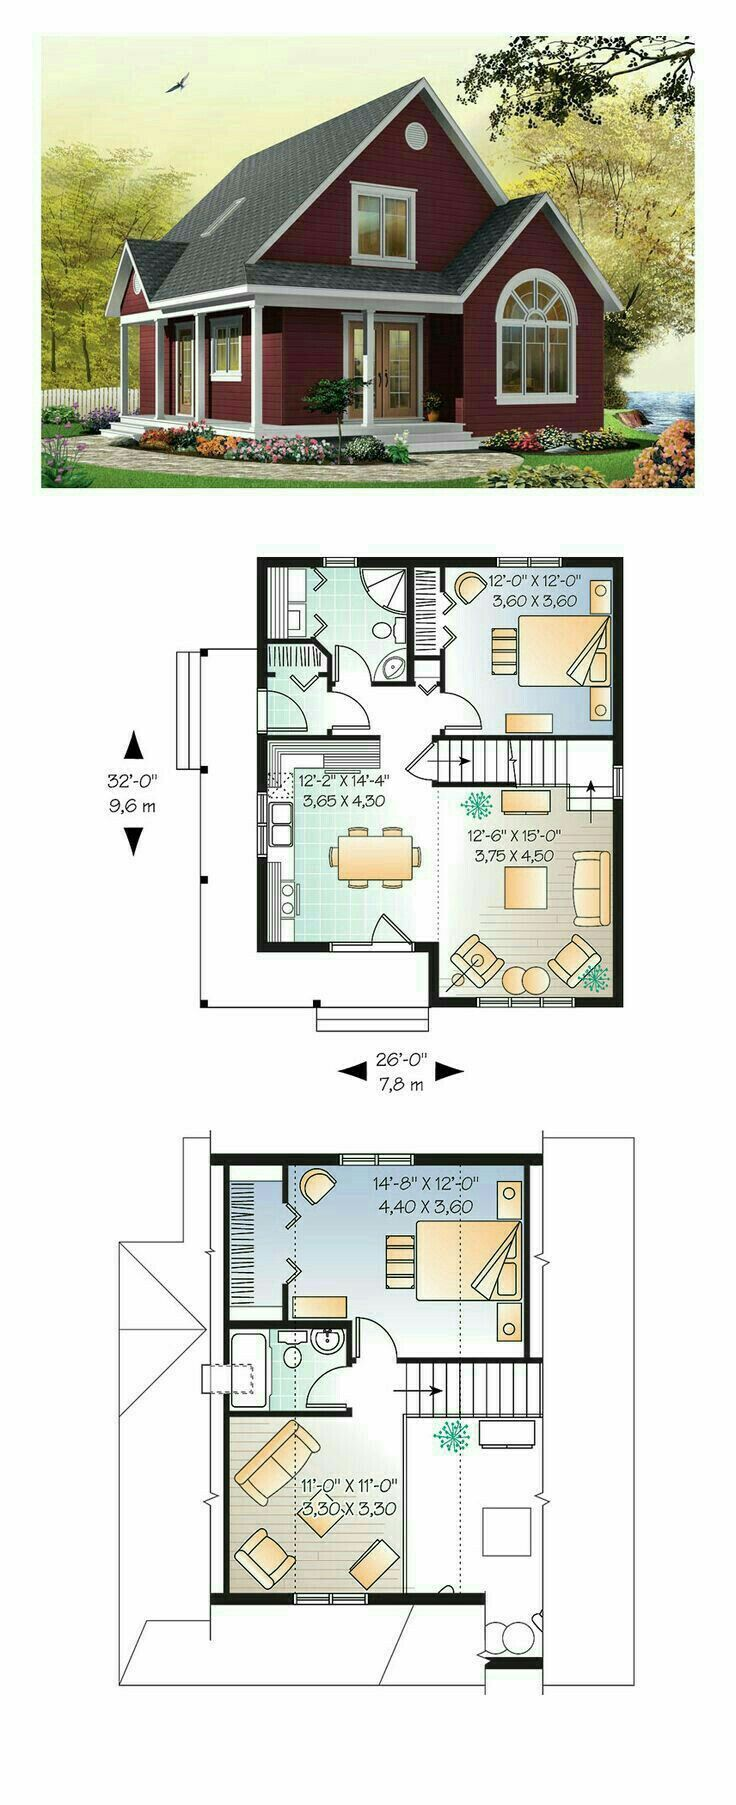 Plan Of A Small Two Story House Country Style House Plans House Plans Best House Plans